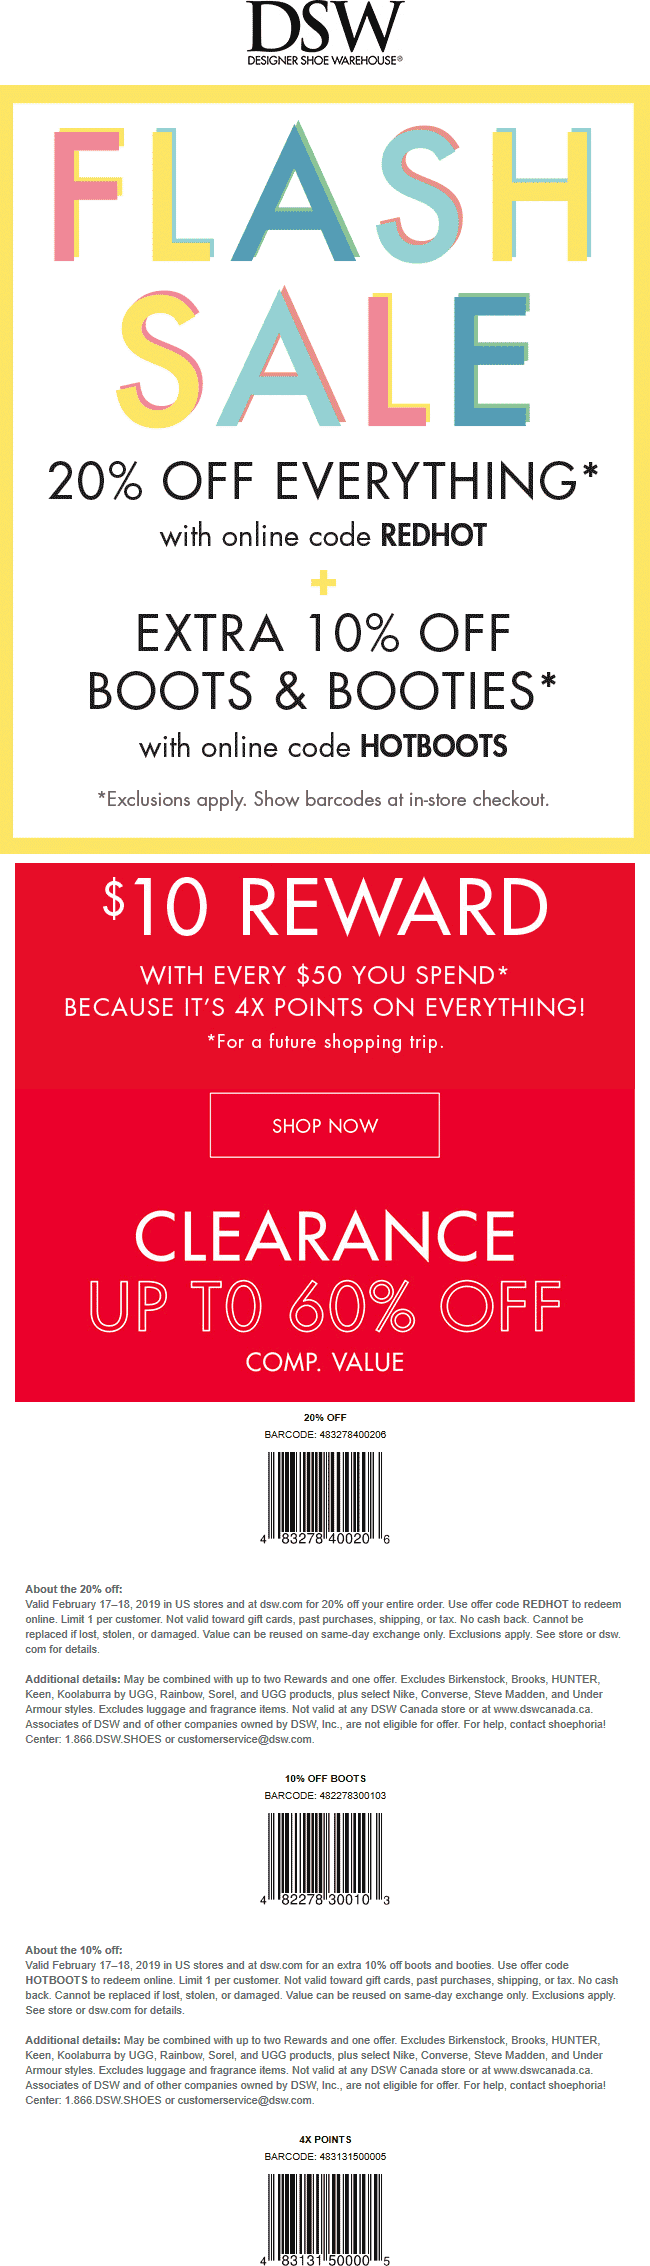 DSW coupons & promo code for [April 2021]